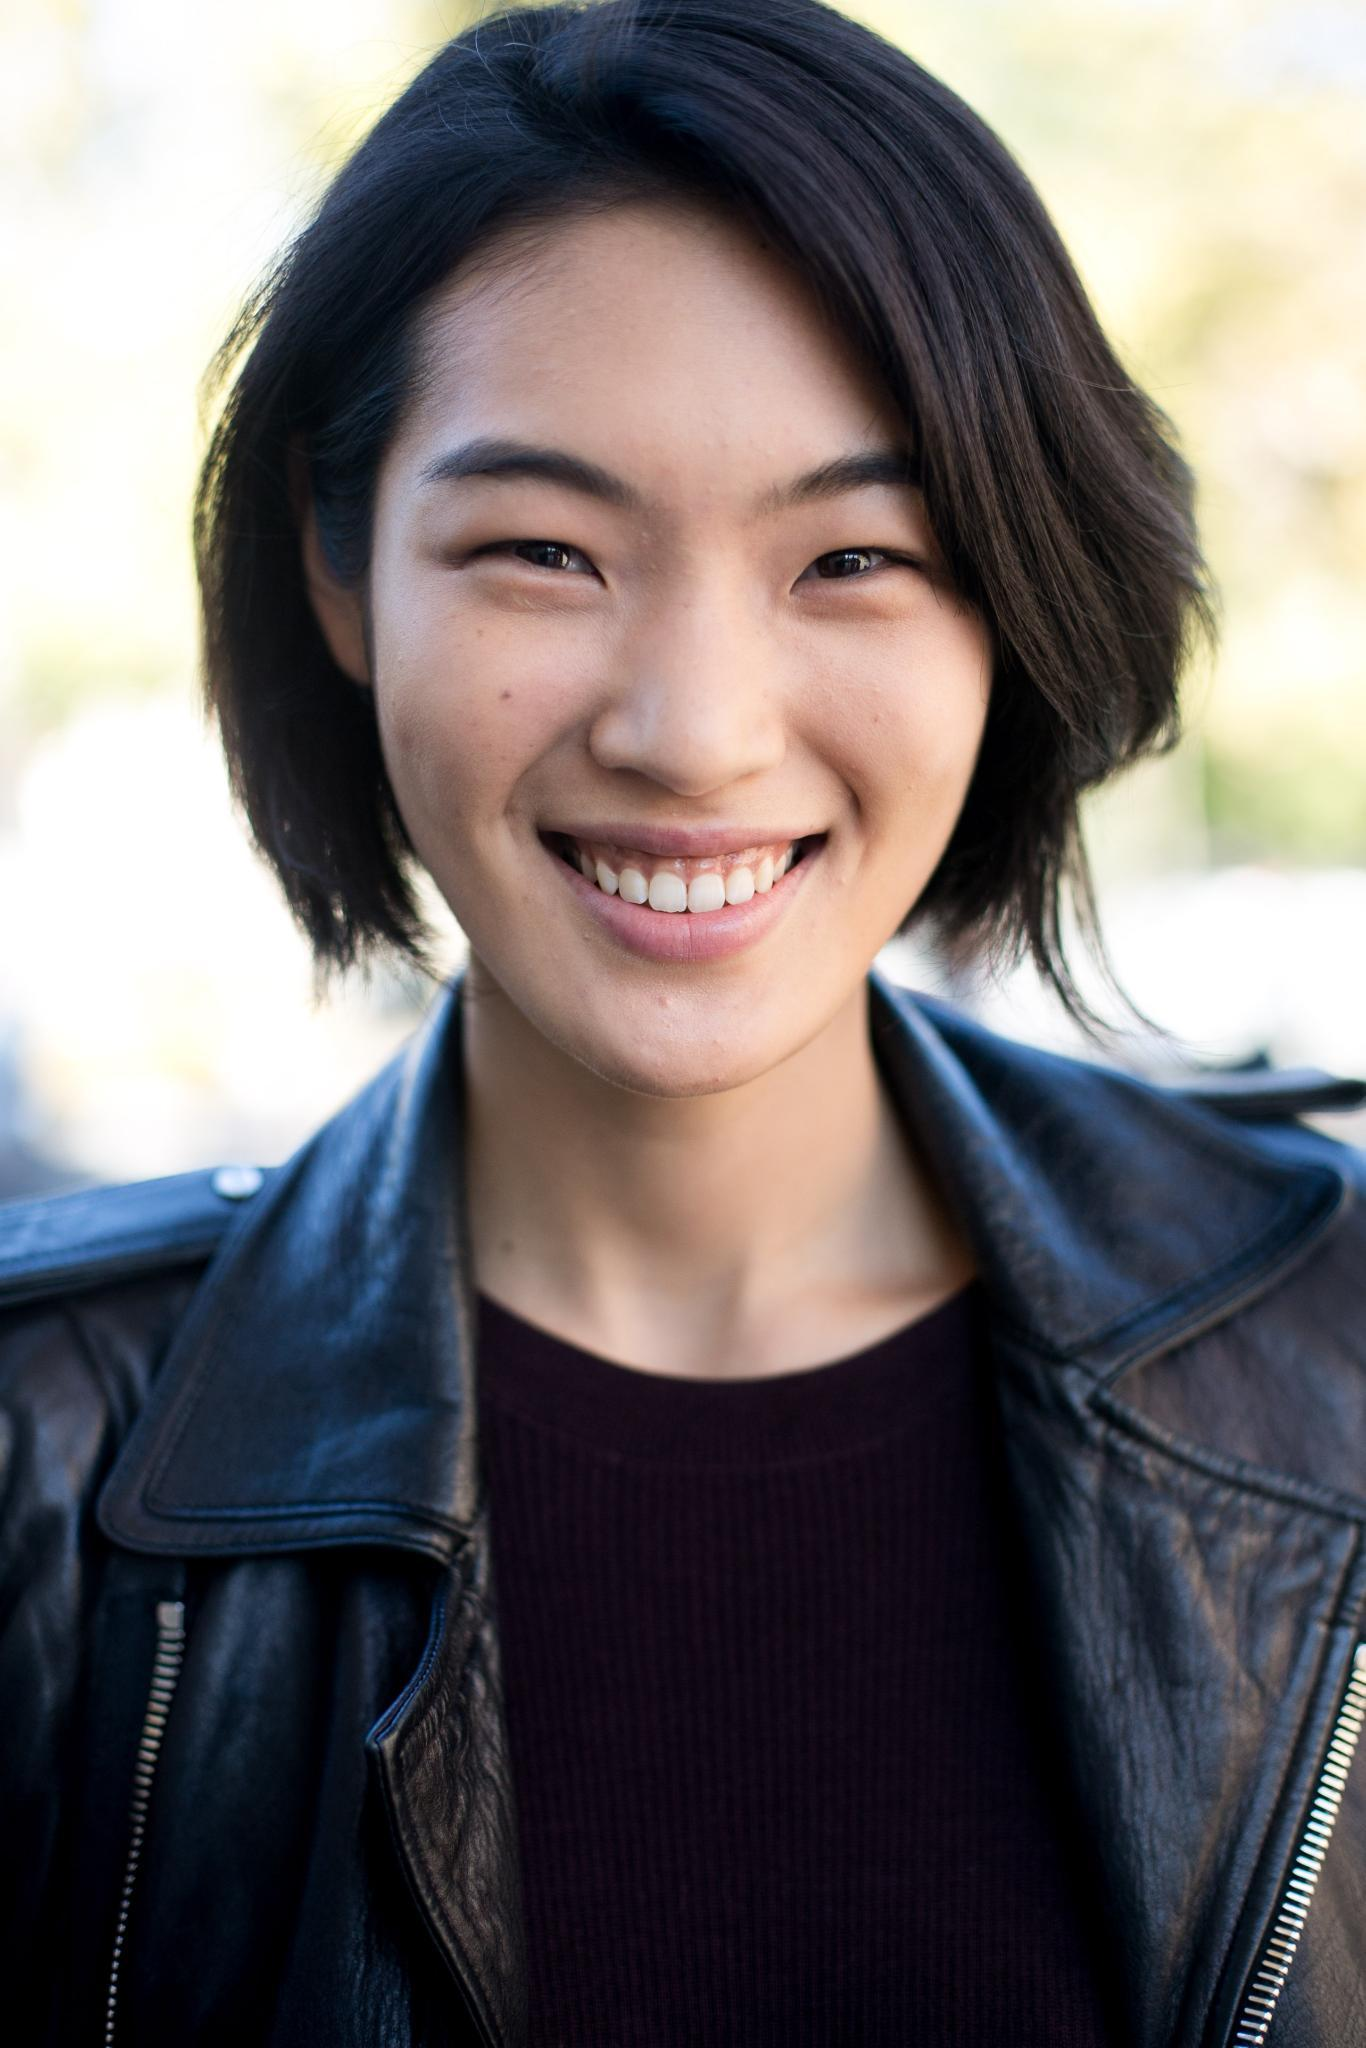 young Asian woman with feathered bob haircut